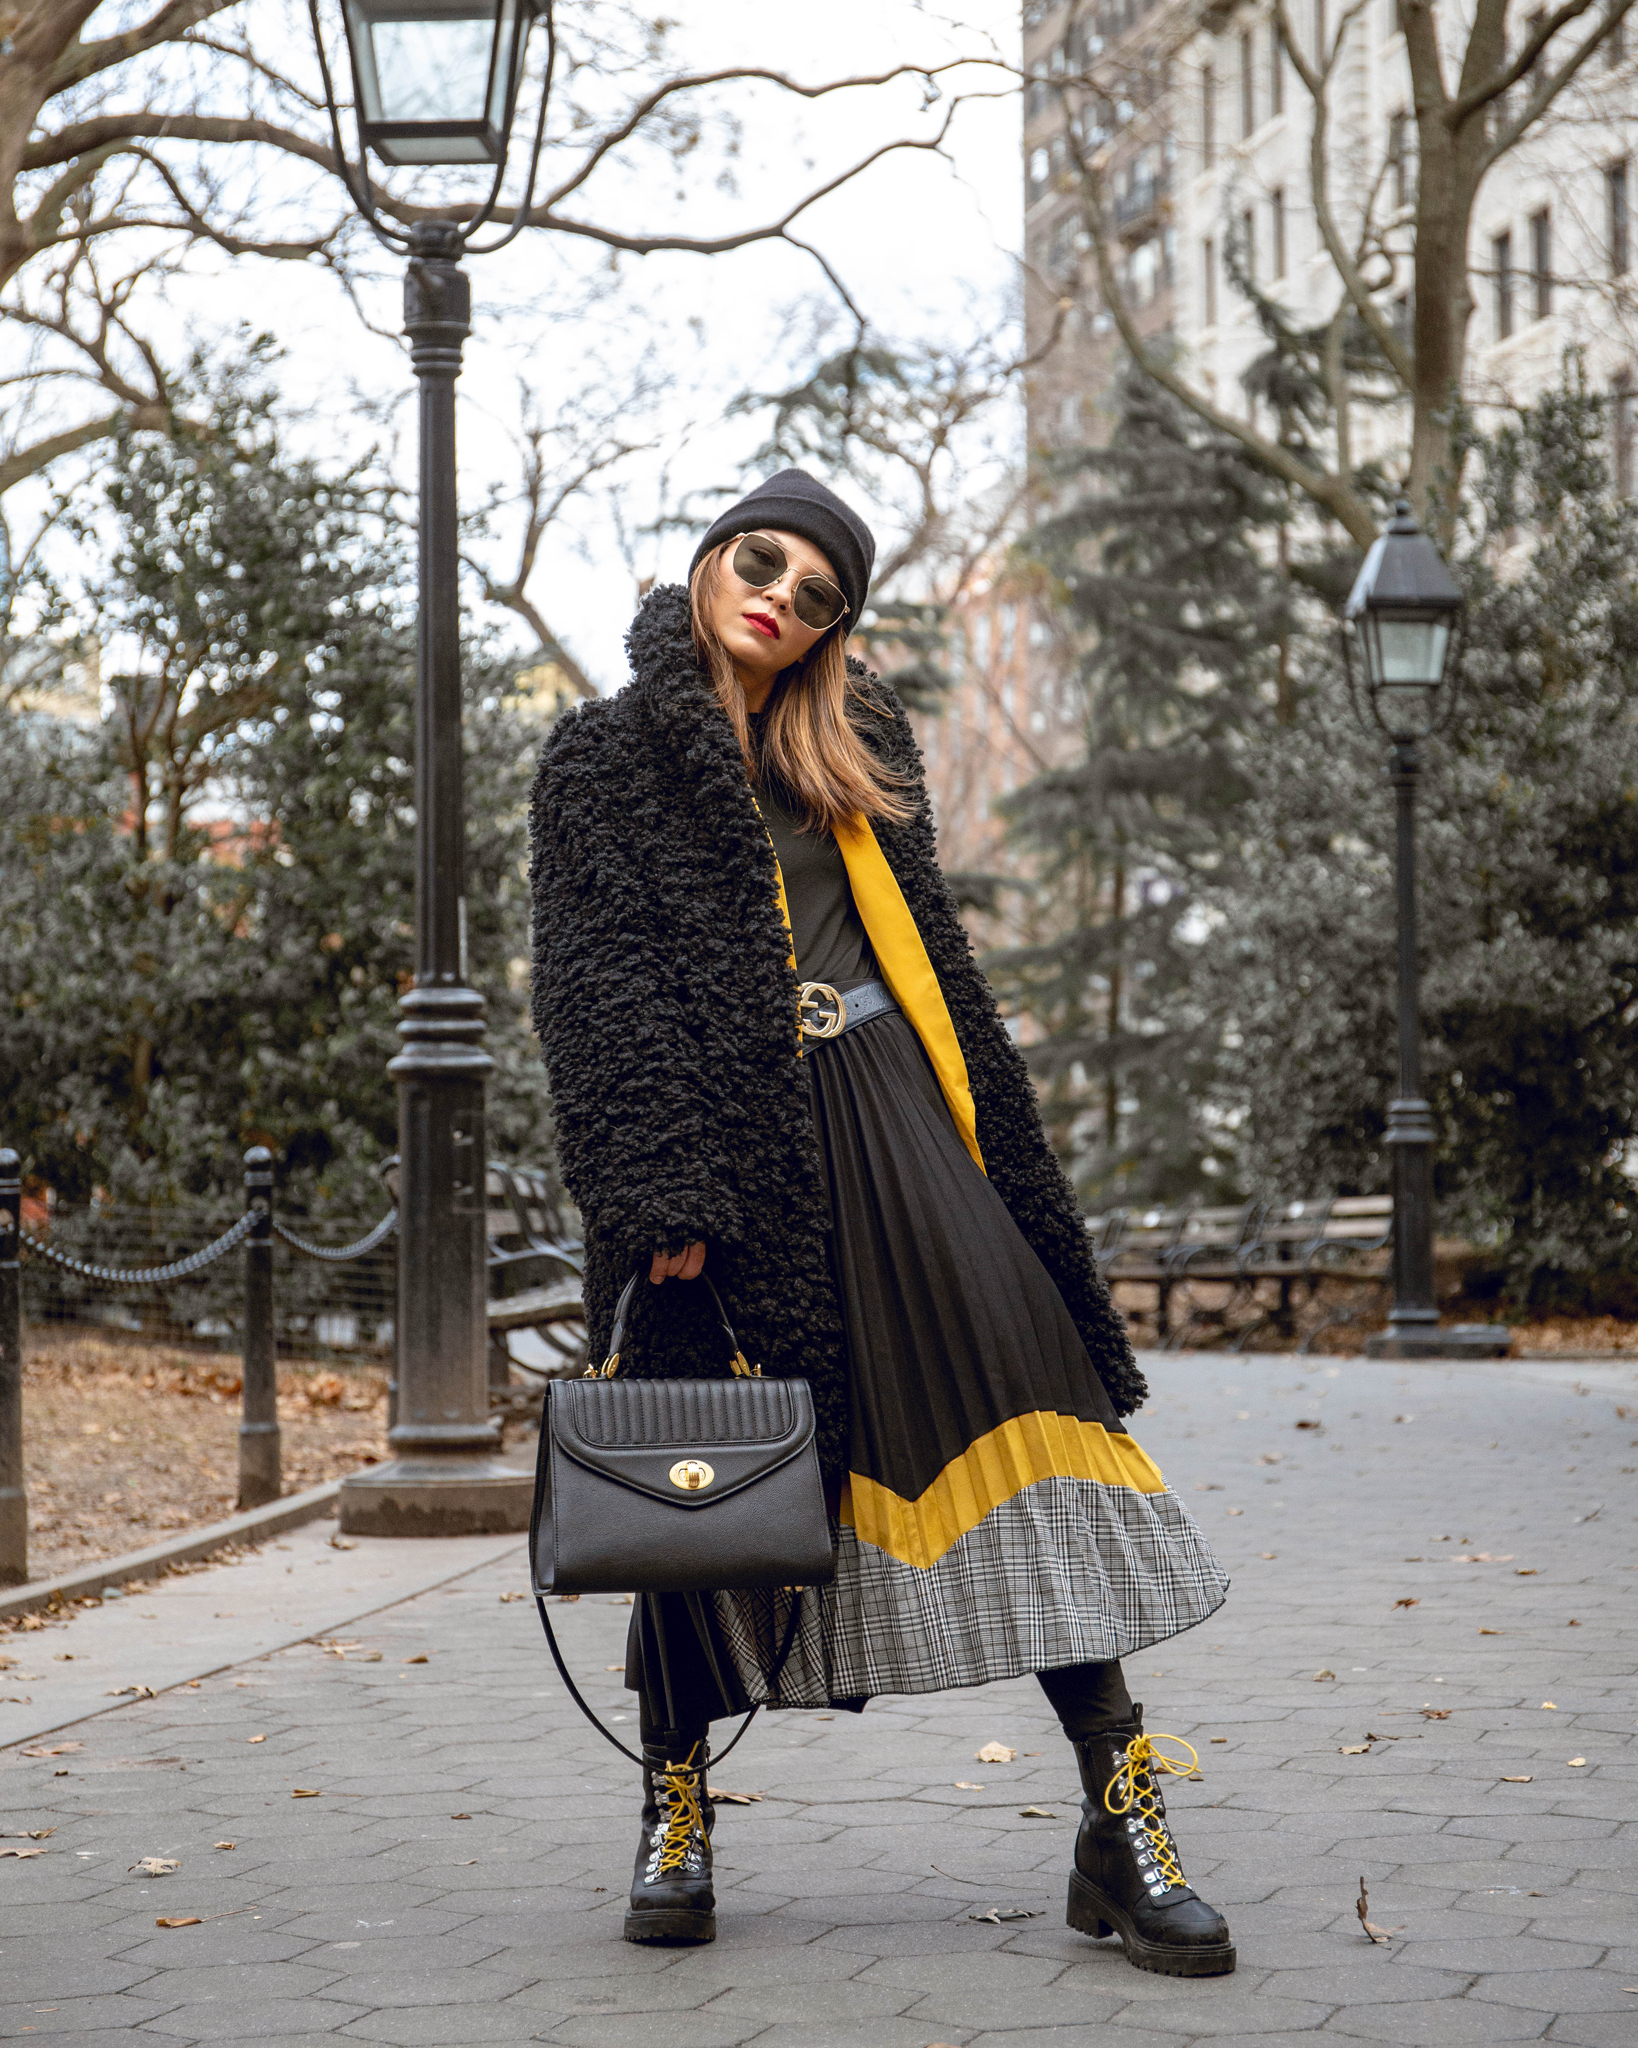 NYC fashion blogger